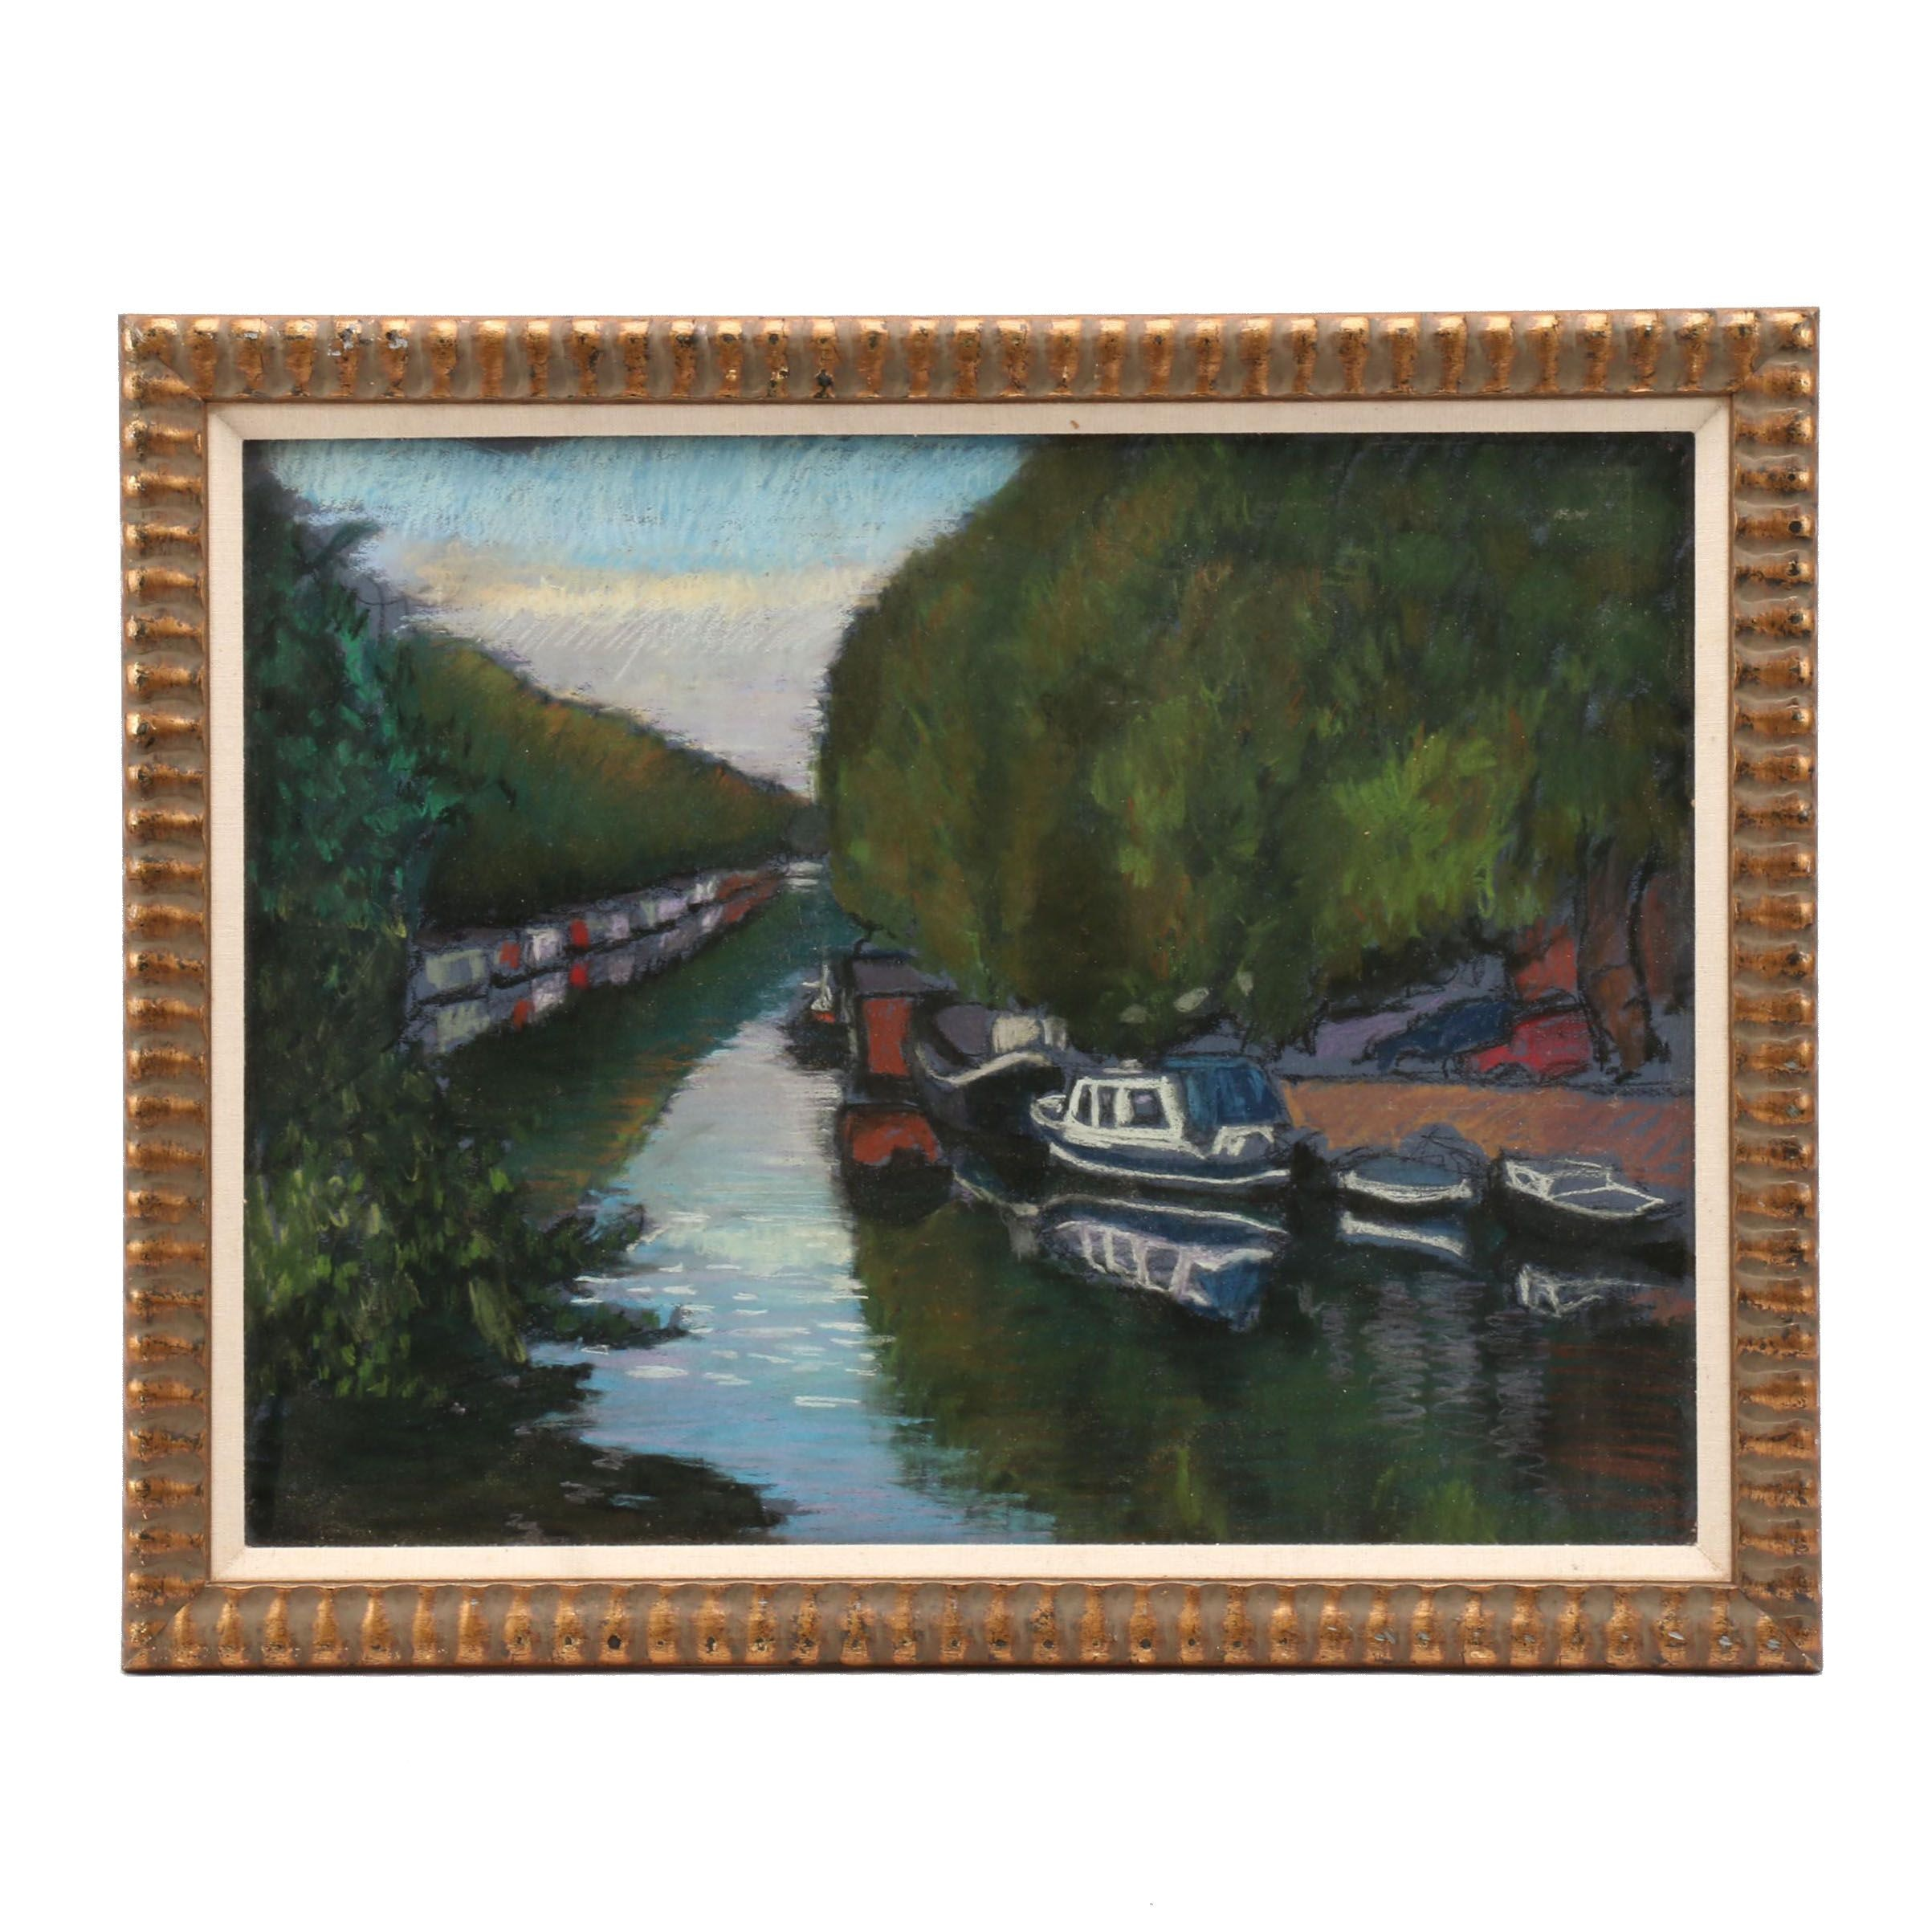 Late 20th Century Impressionistic Style Canal Charcoal Drawing